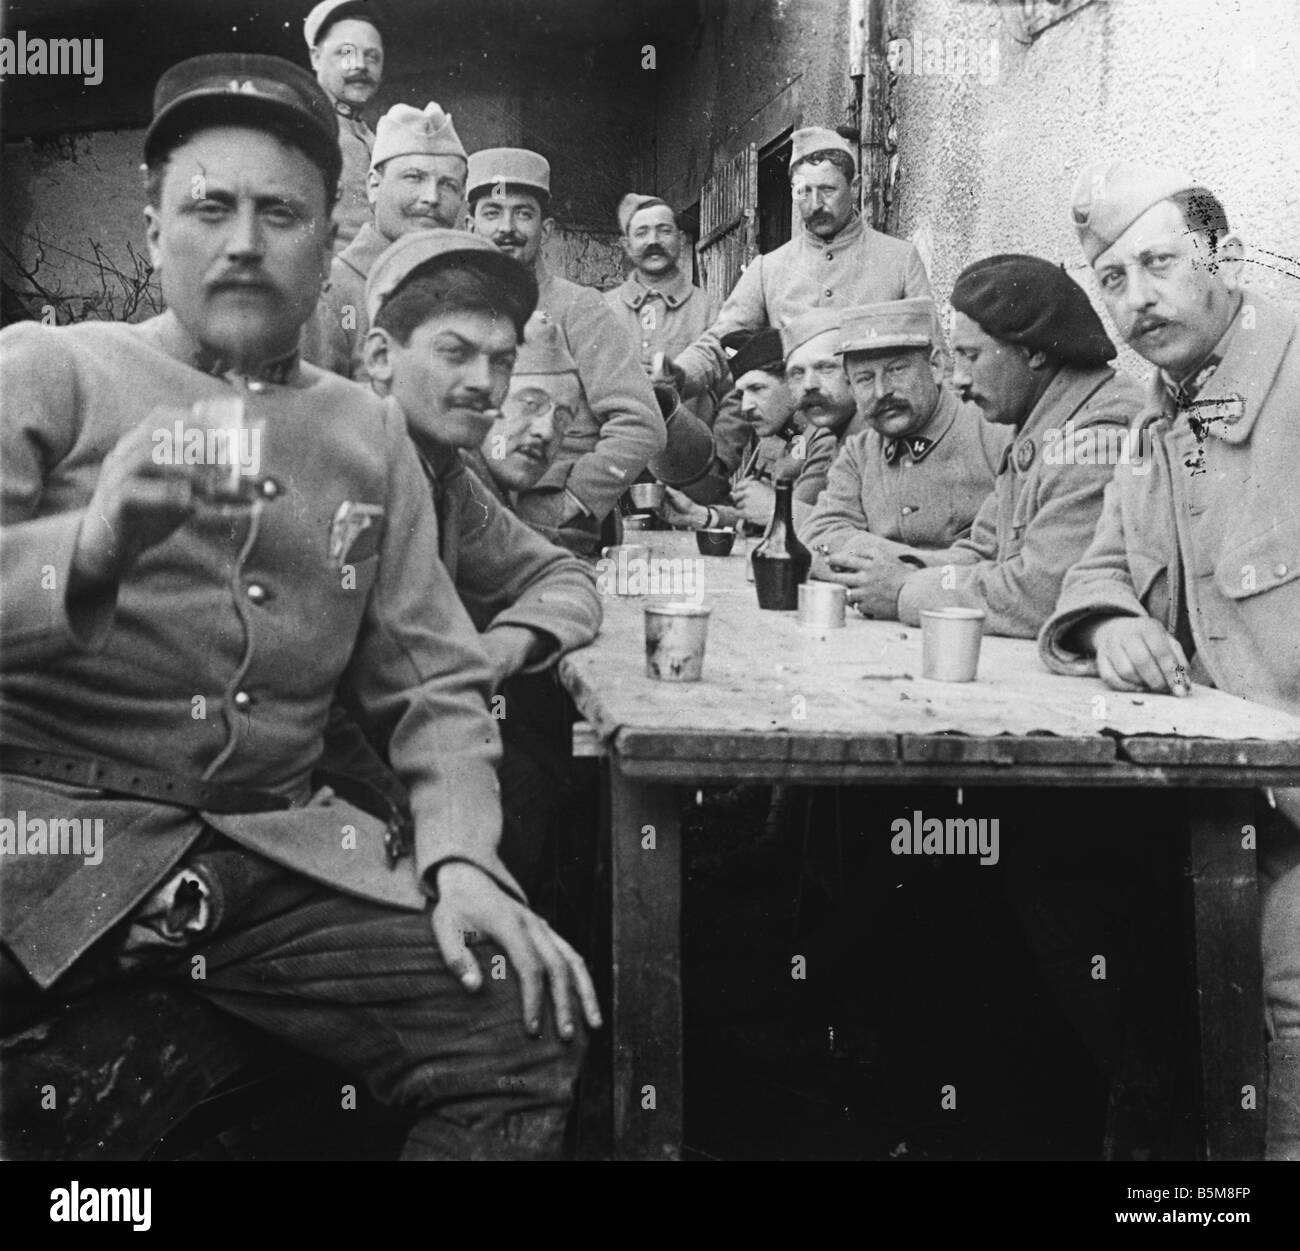 2 G55 F1 1917 20 E WW1 French soldiers officers Photo History World War One France Soldiers and officers of the Stock Photo